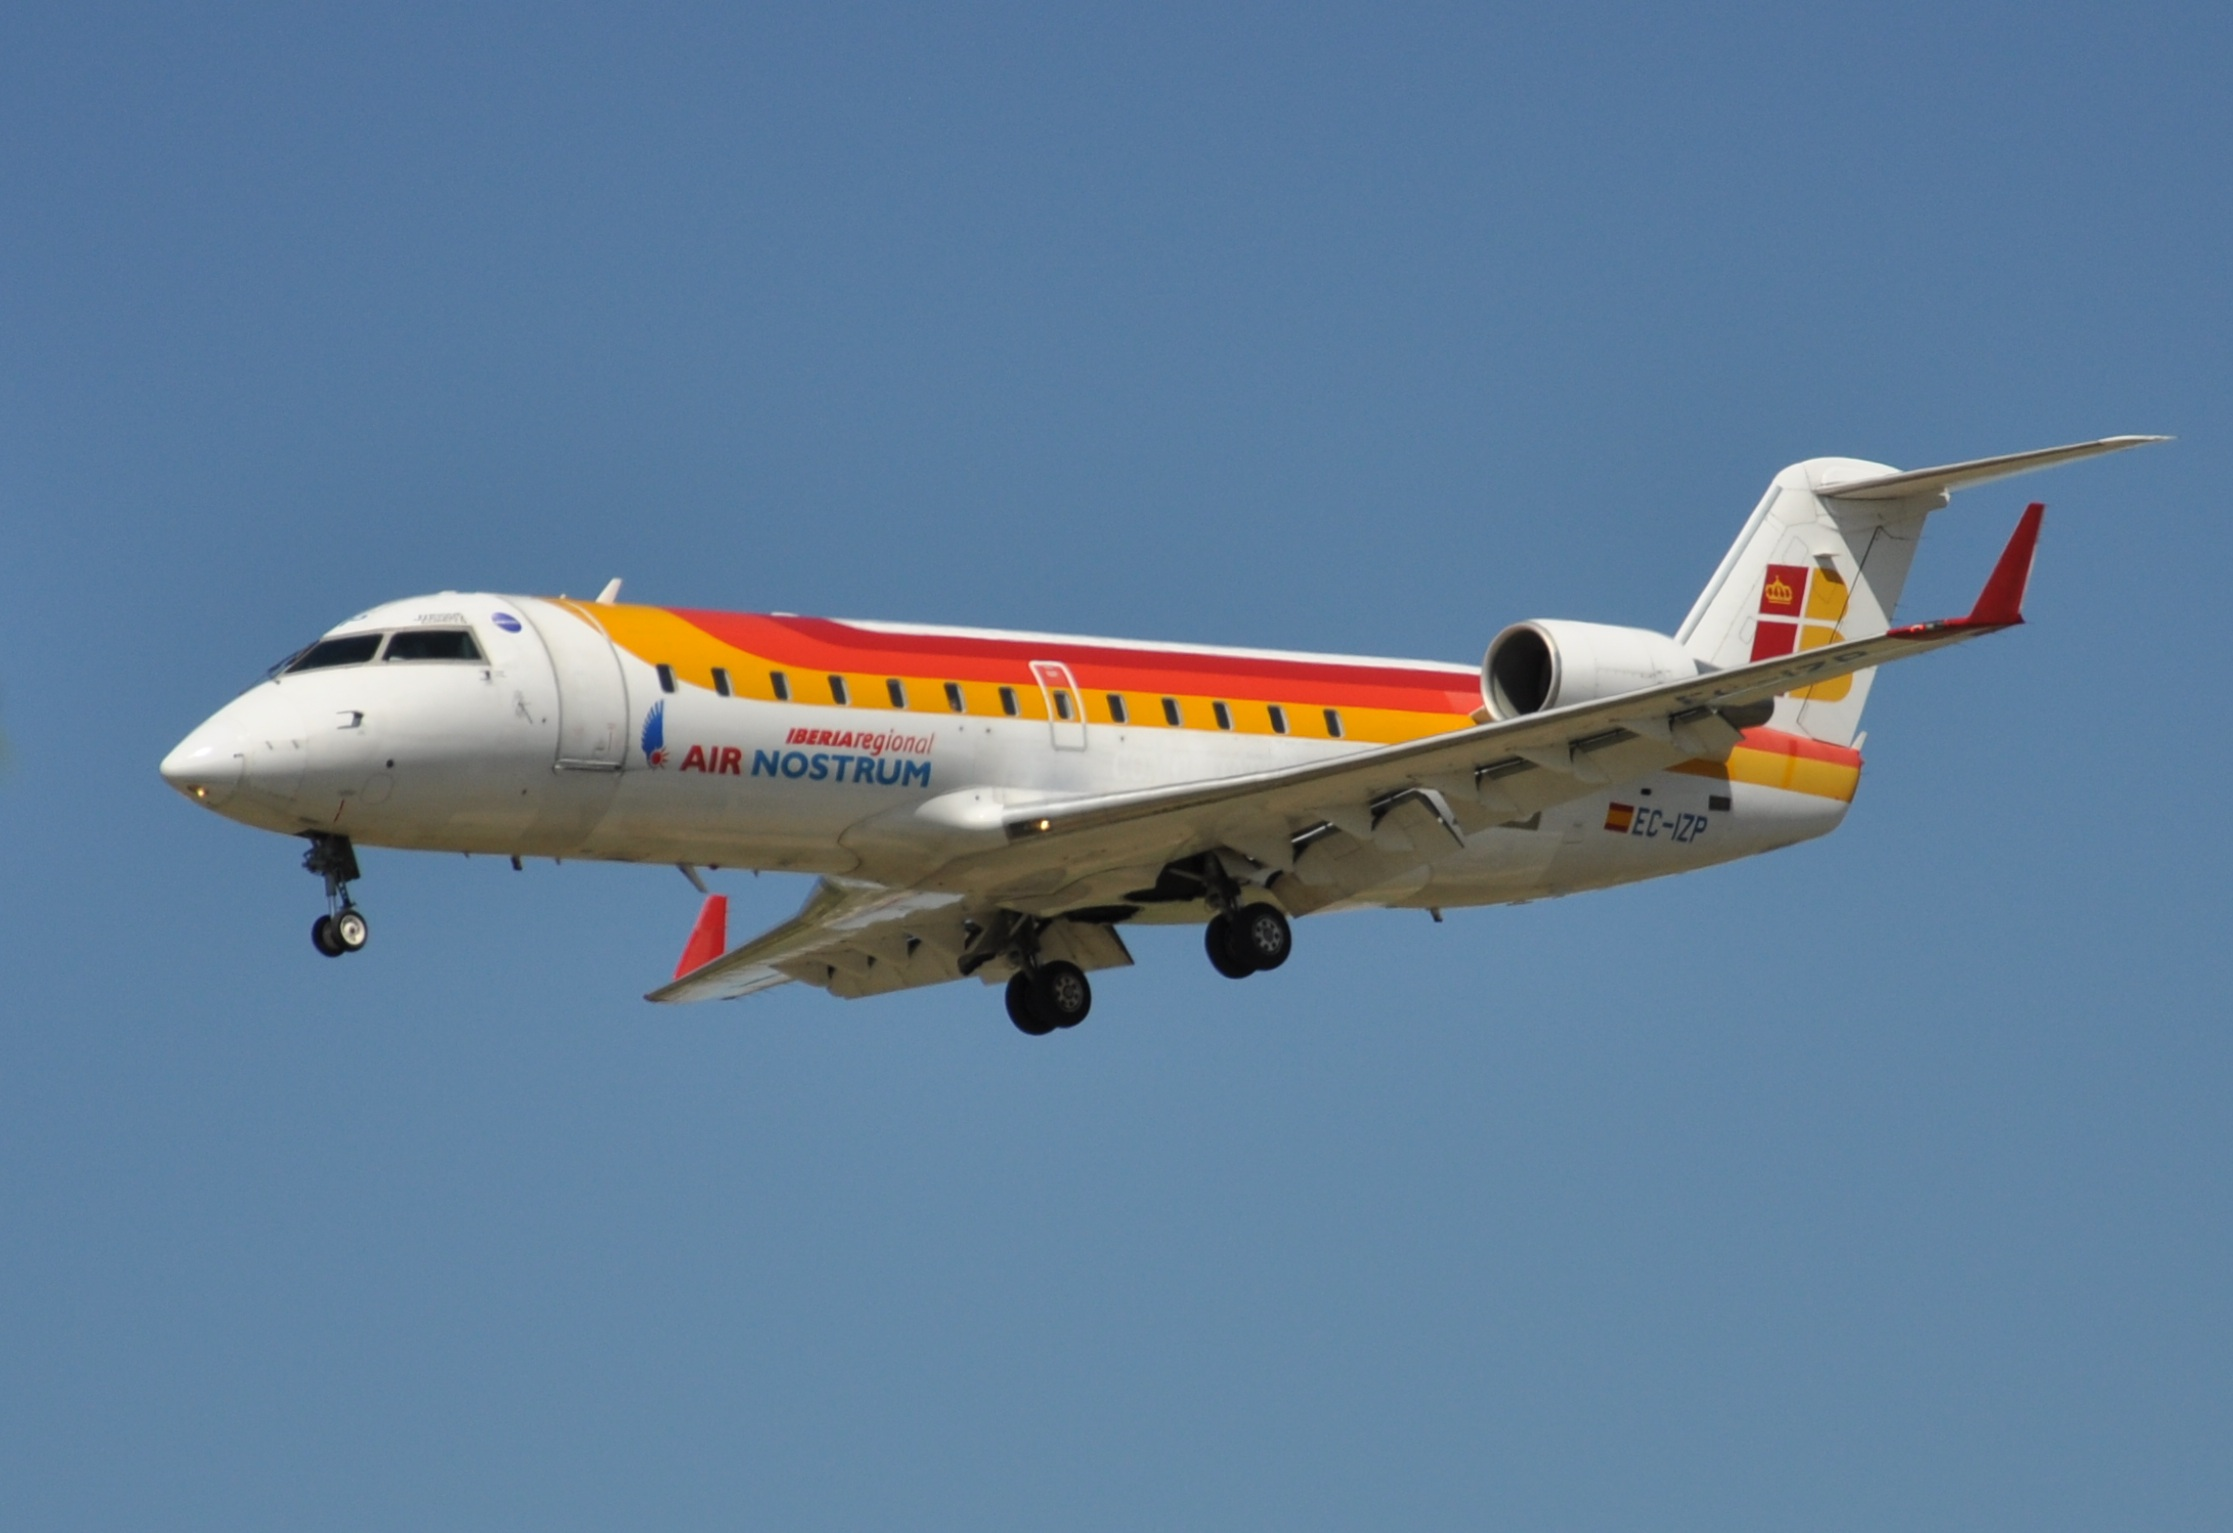 Denim Air used to operate 14 aircraft on behalf of Air Nostrum, although they were not CRJ200s like this one but Bombardier Dash 8 Q300 instead. Picture:  Pau Cuevas